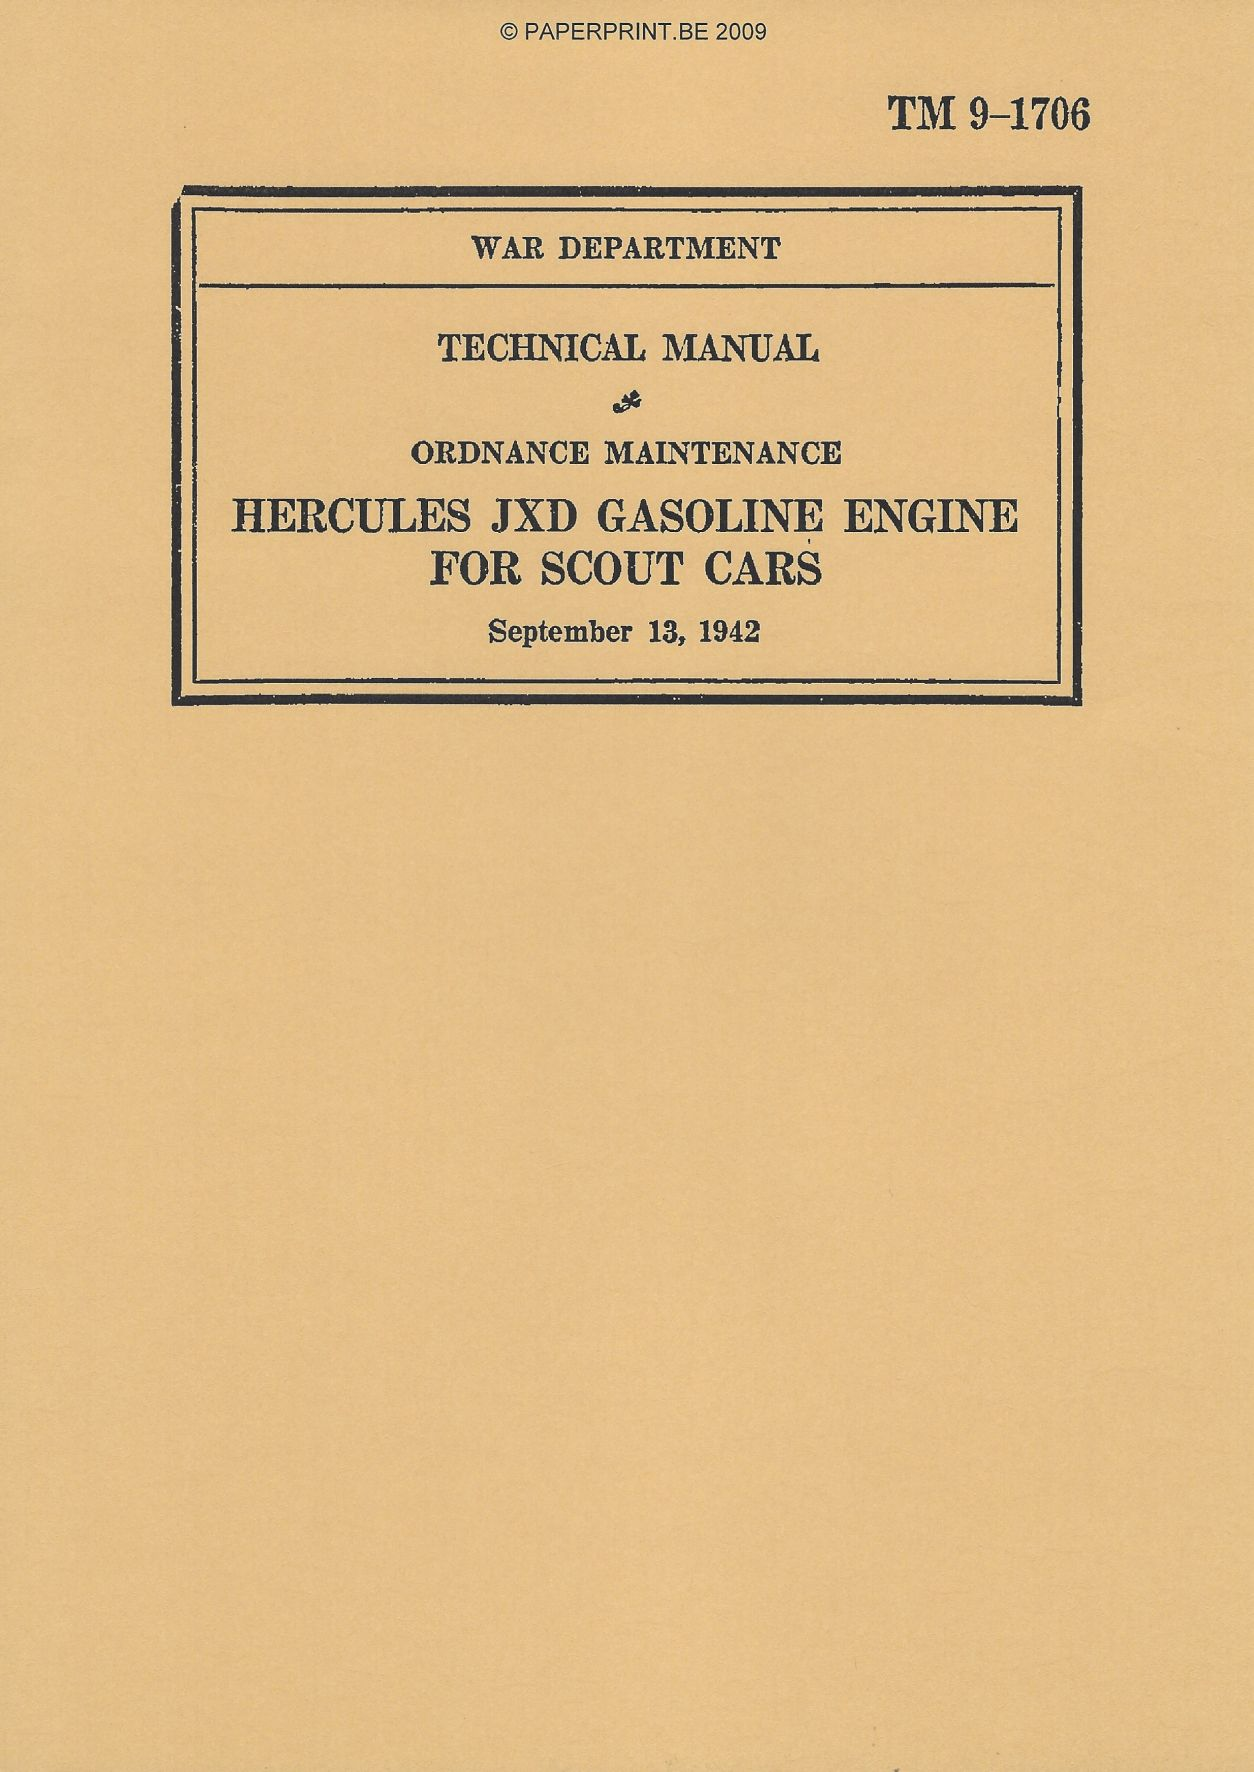 TM 9-1706 US HERCULES JXD GASOLINE ENGINE FOR SCOUT CARS